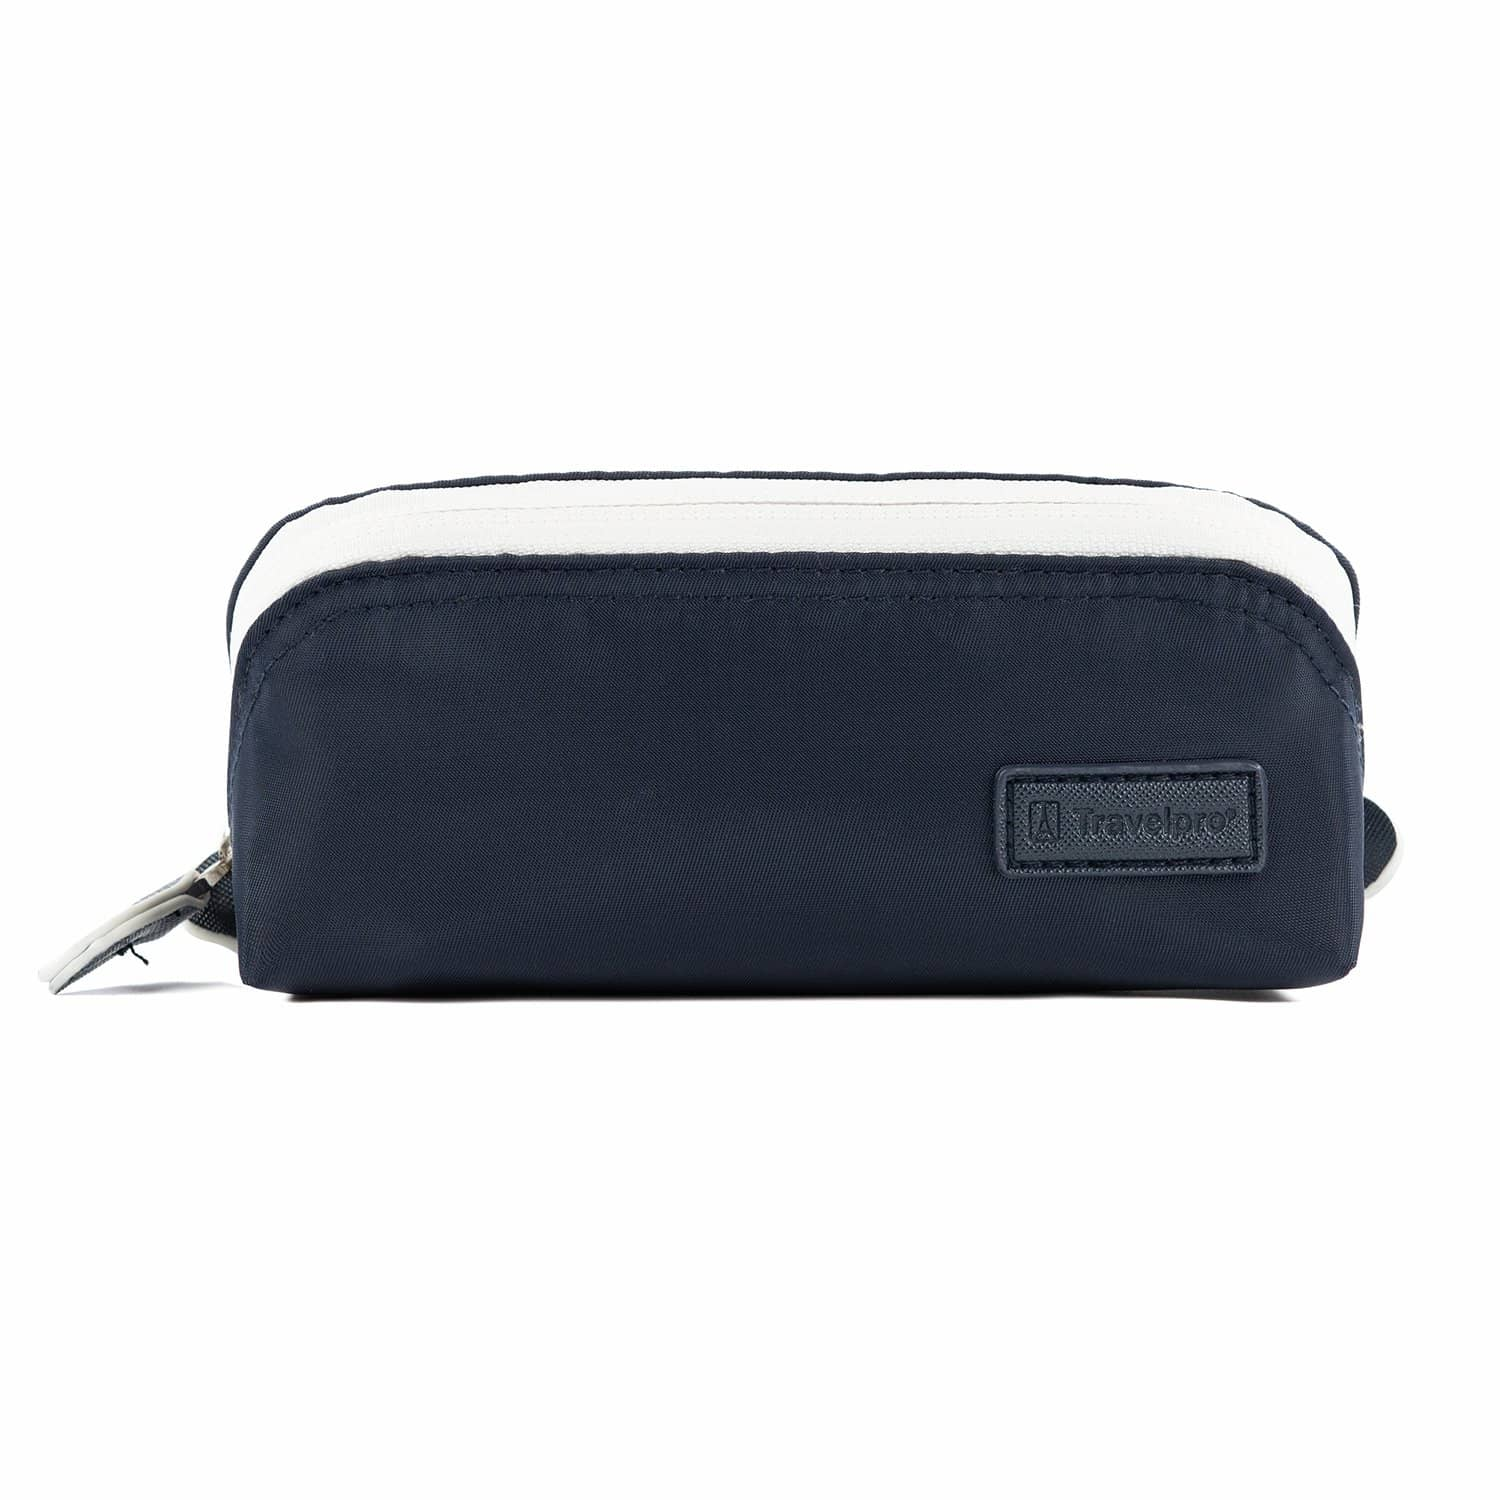 Travelpro Travelpro® Essentials™ Maxaccess Cubes™ Small Organizer Navy